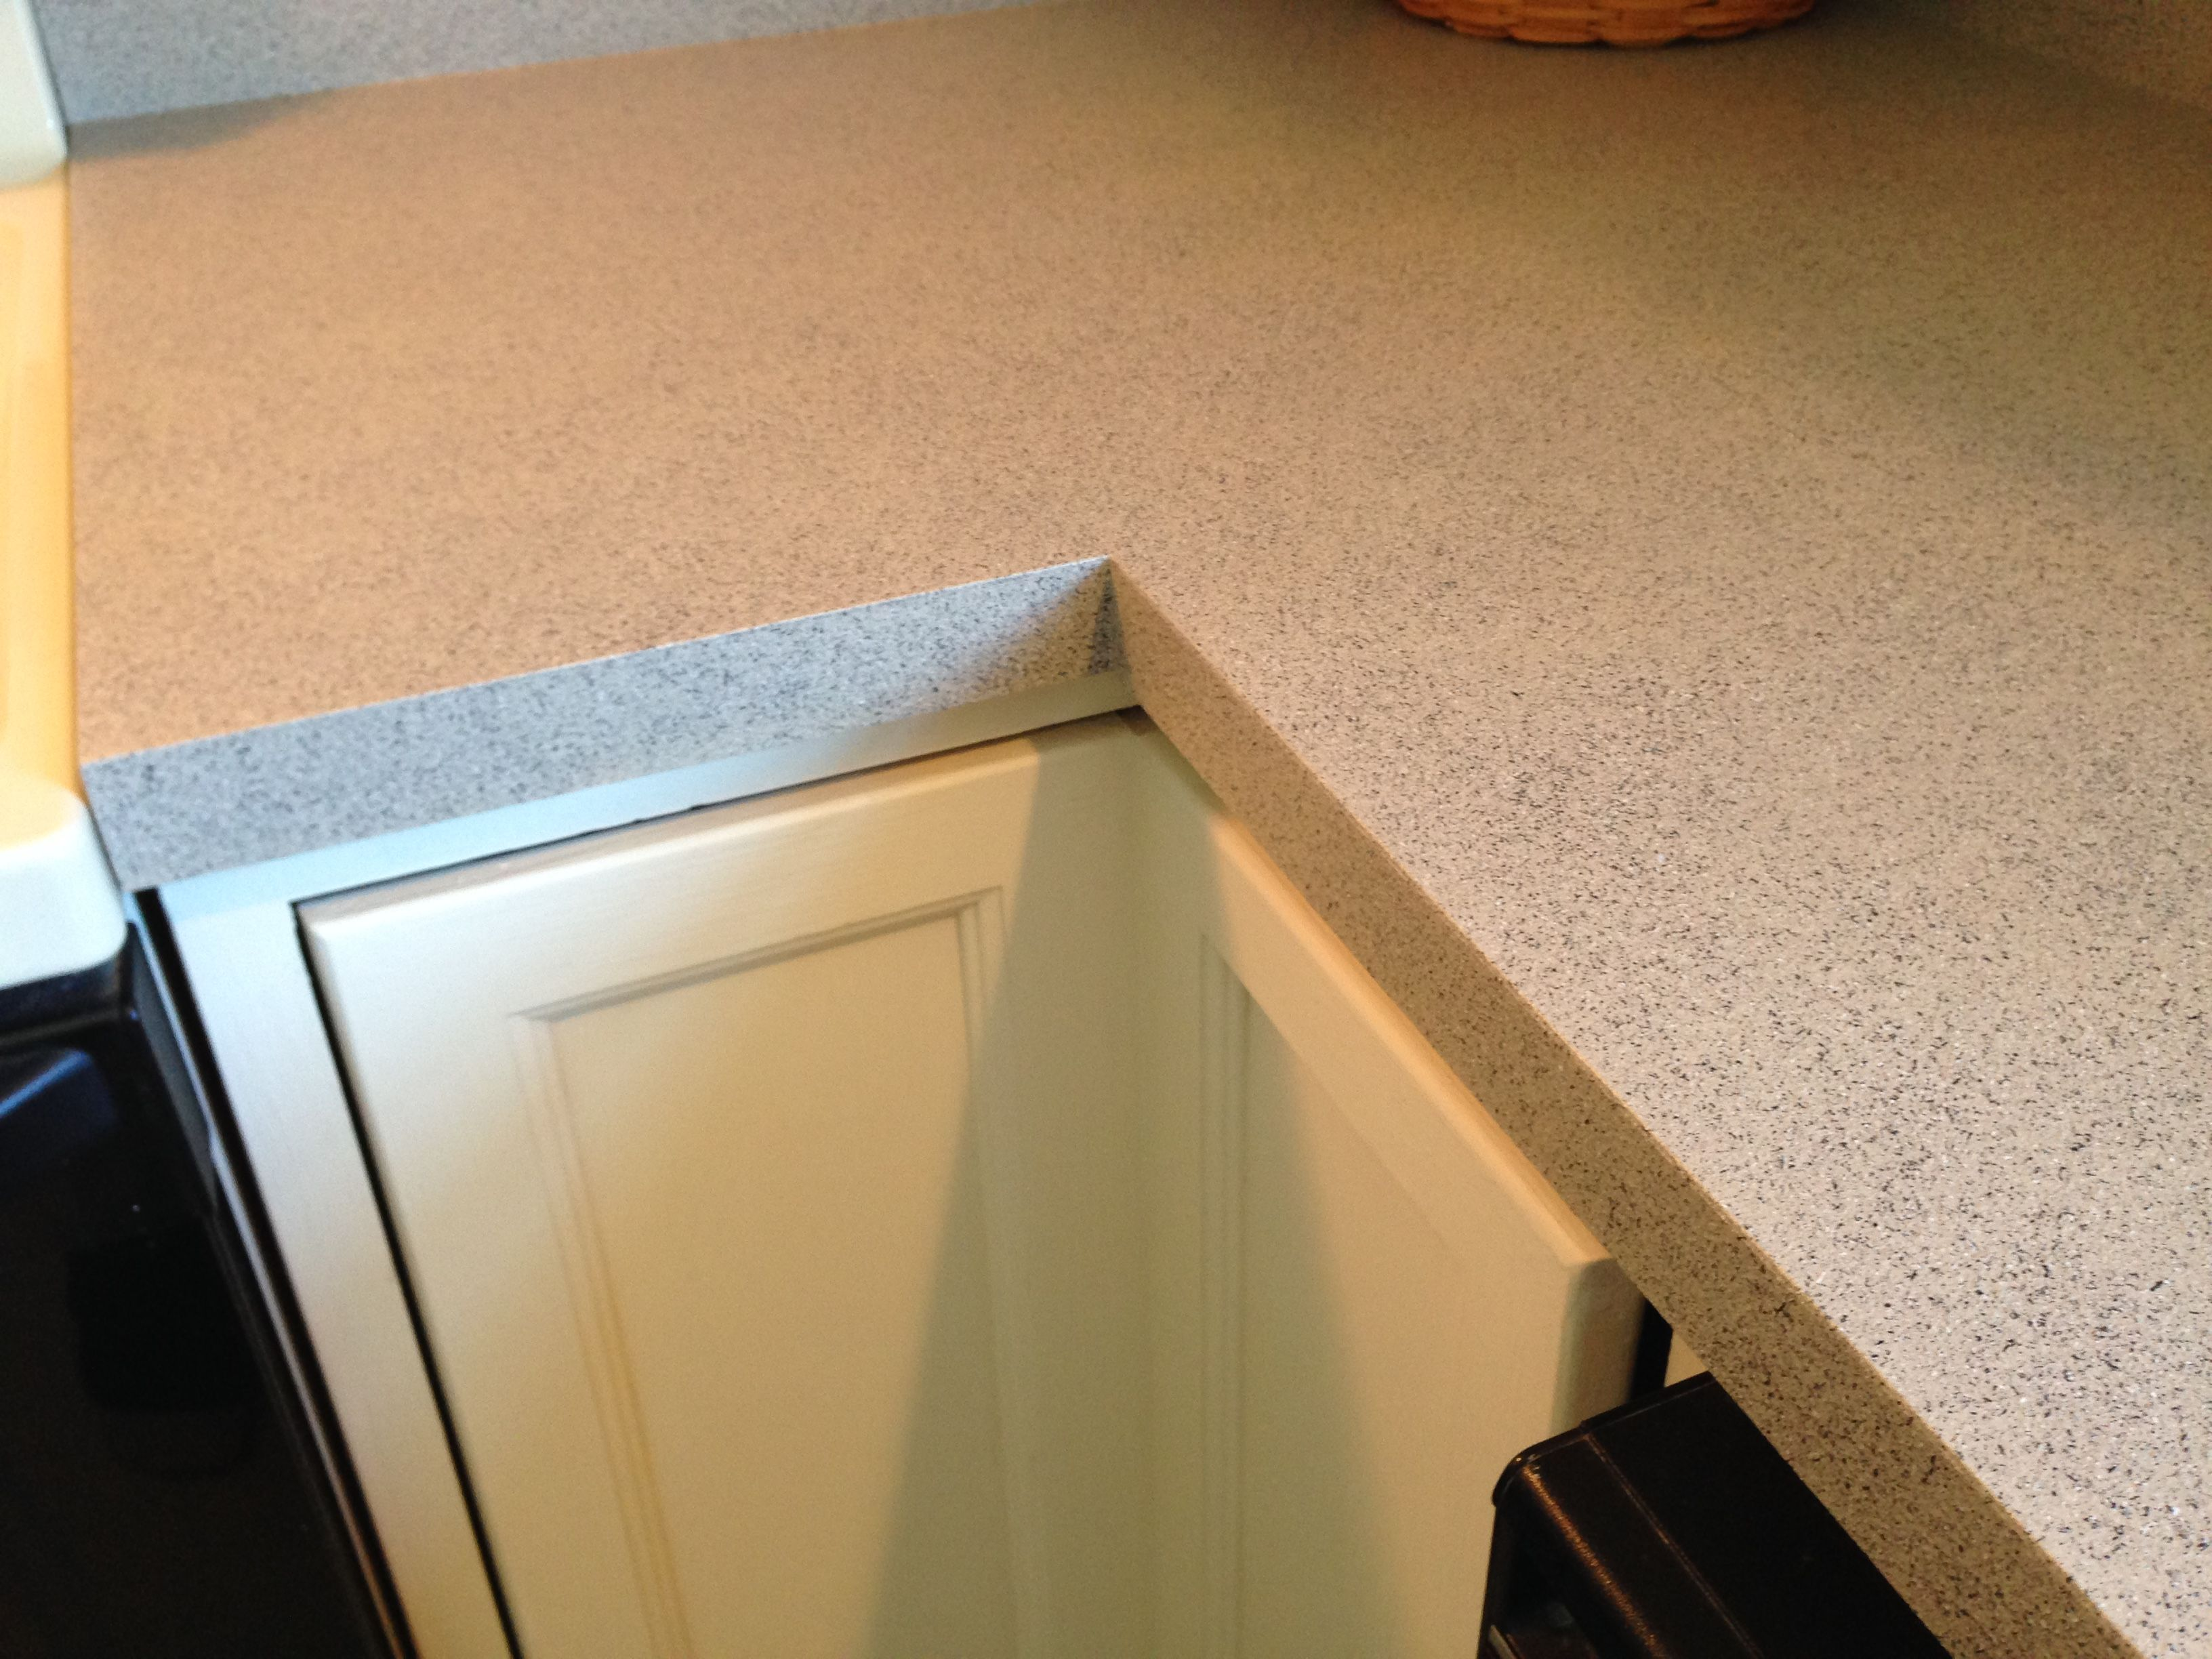 Rust Oleum Stone Accents Pebble Spray Painted Countertop